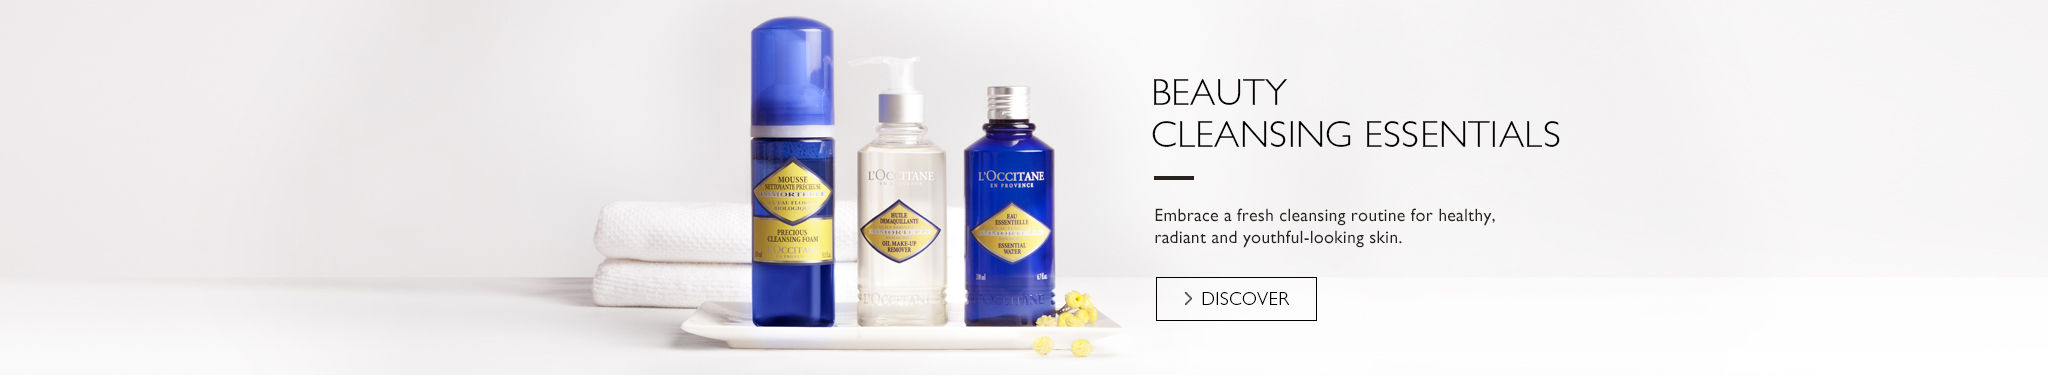 Beauty Cleansing Essentials